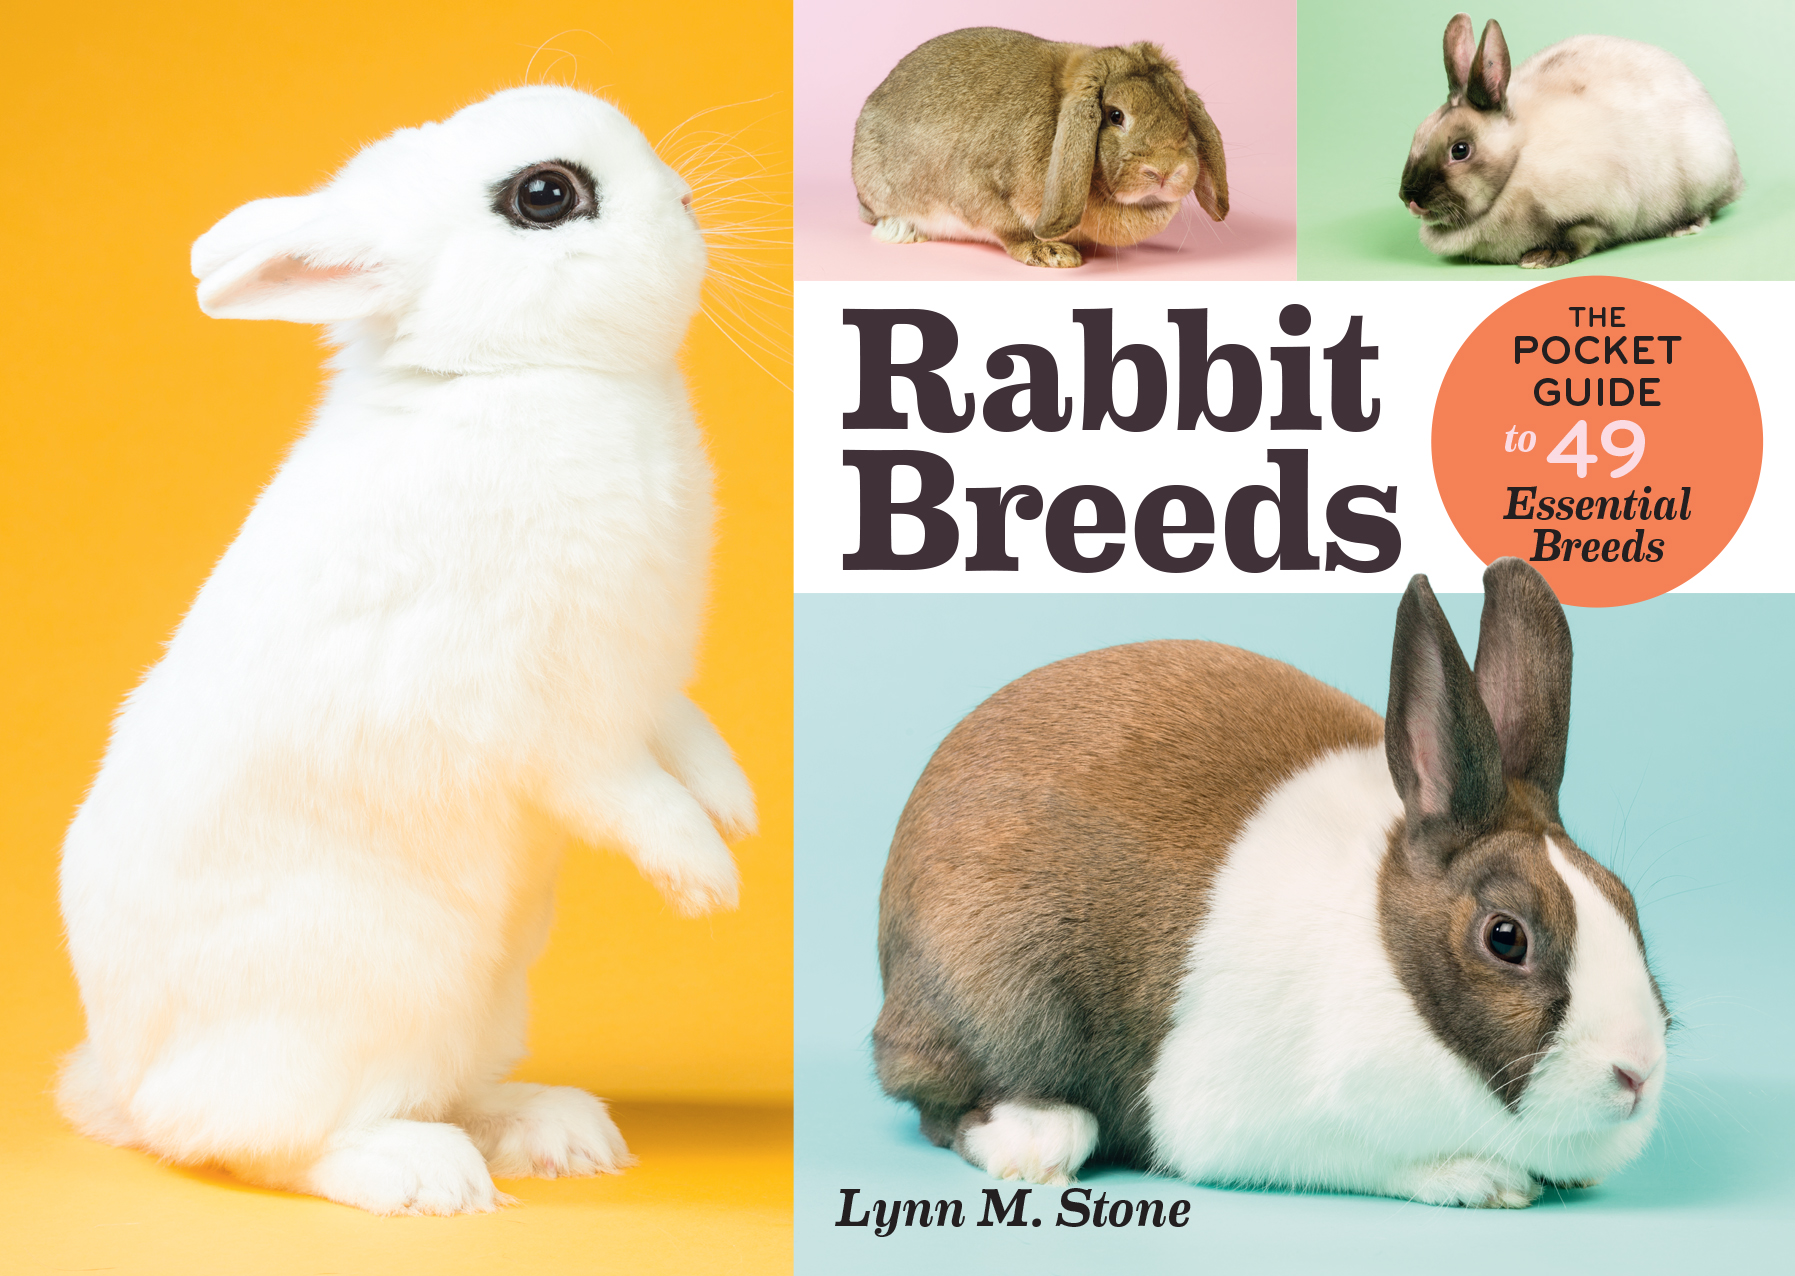 Rabbit Breeds The Pocket Guide to 49 Essential Breeds - Lynn M. Stone